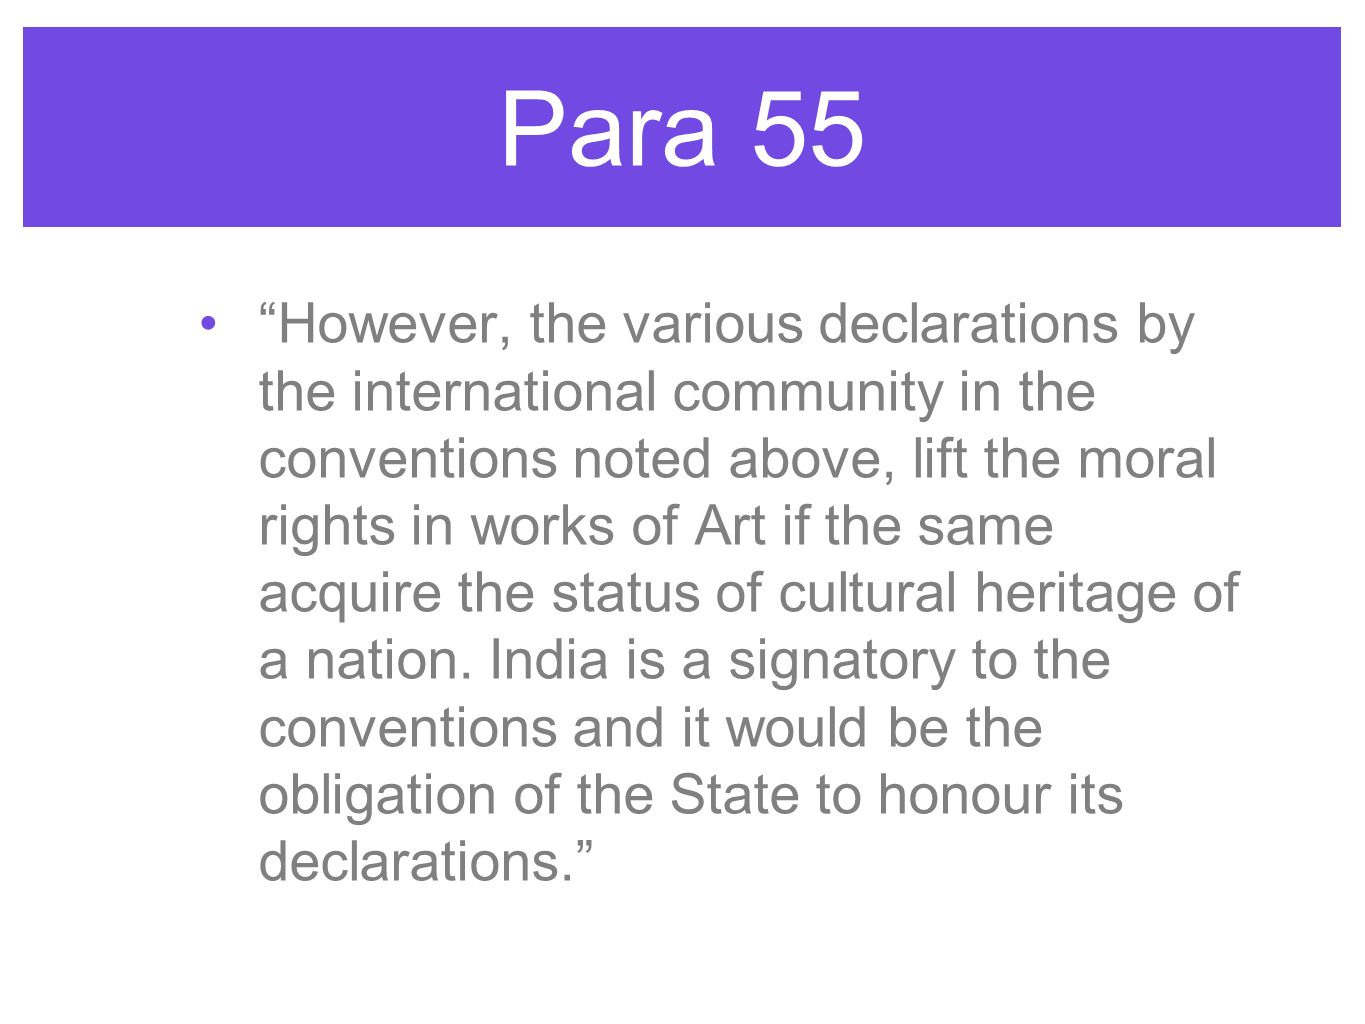 Para 55 However, the various declarations by the international community in the conventions noted above, lift the moral rights in works of Art if the